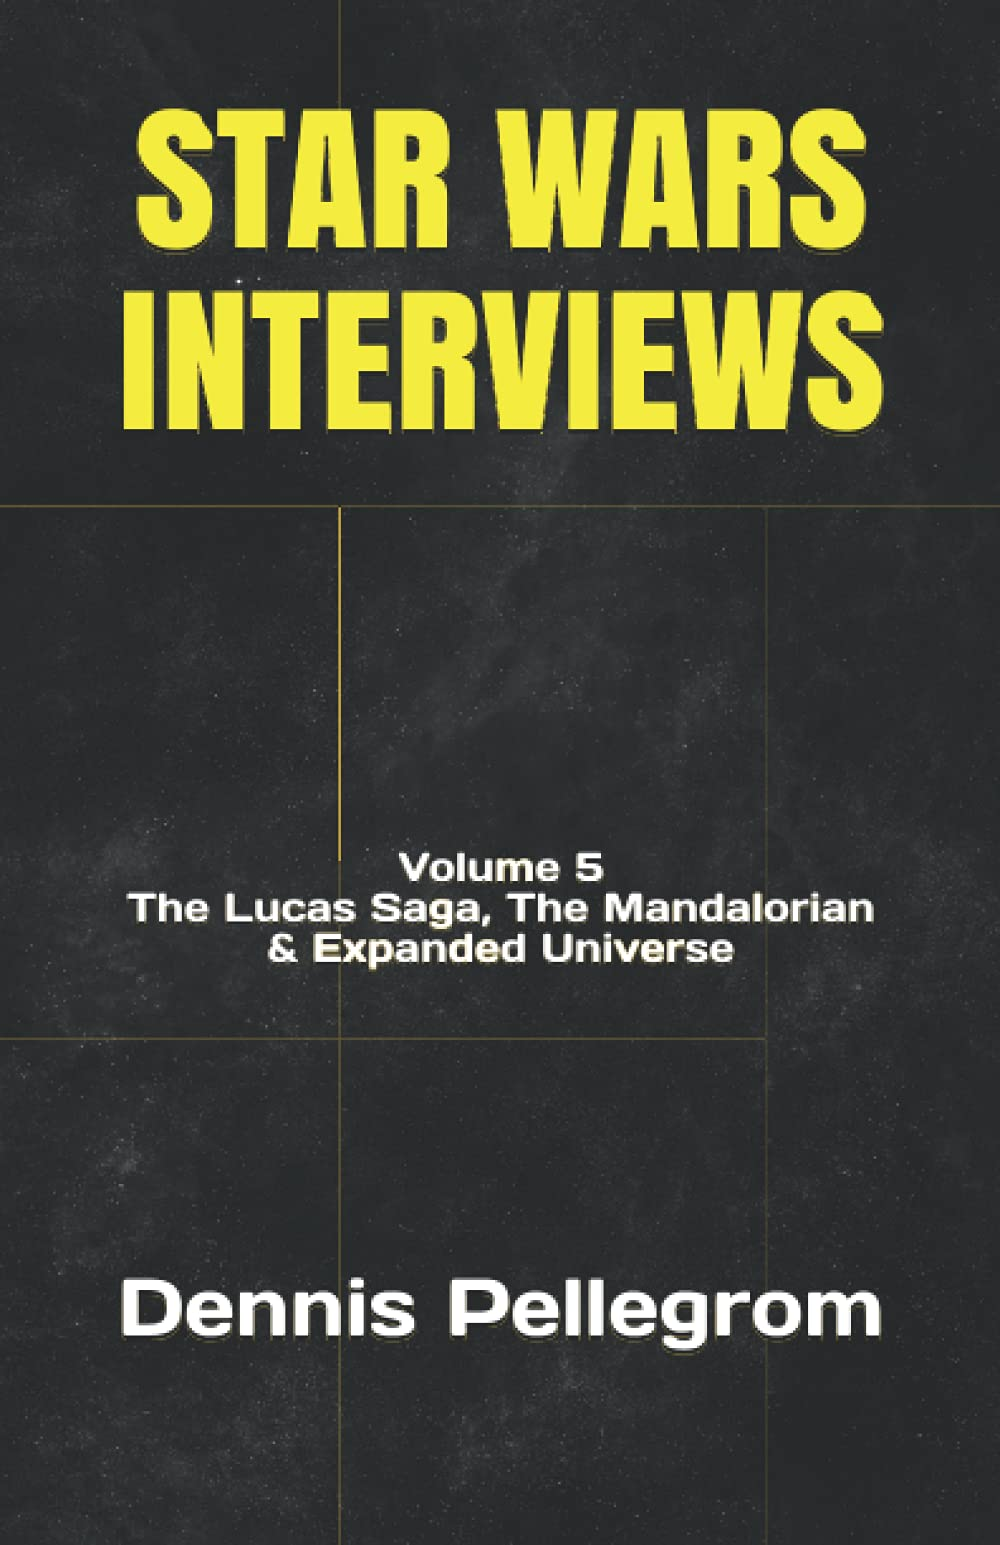 Star Wars: The Interviews Volume 5 -The Lucas Saga, The Mandalorian, and Expanded Universe